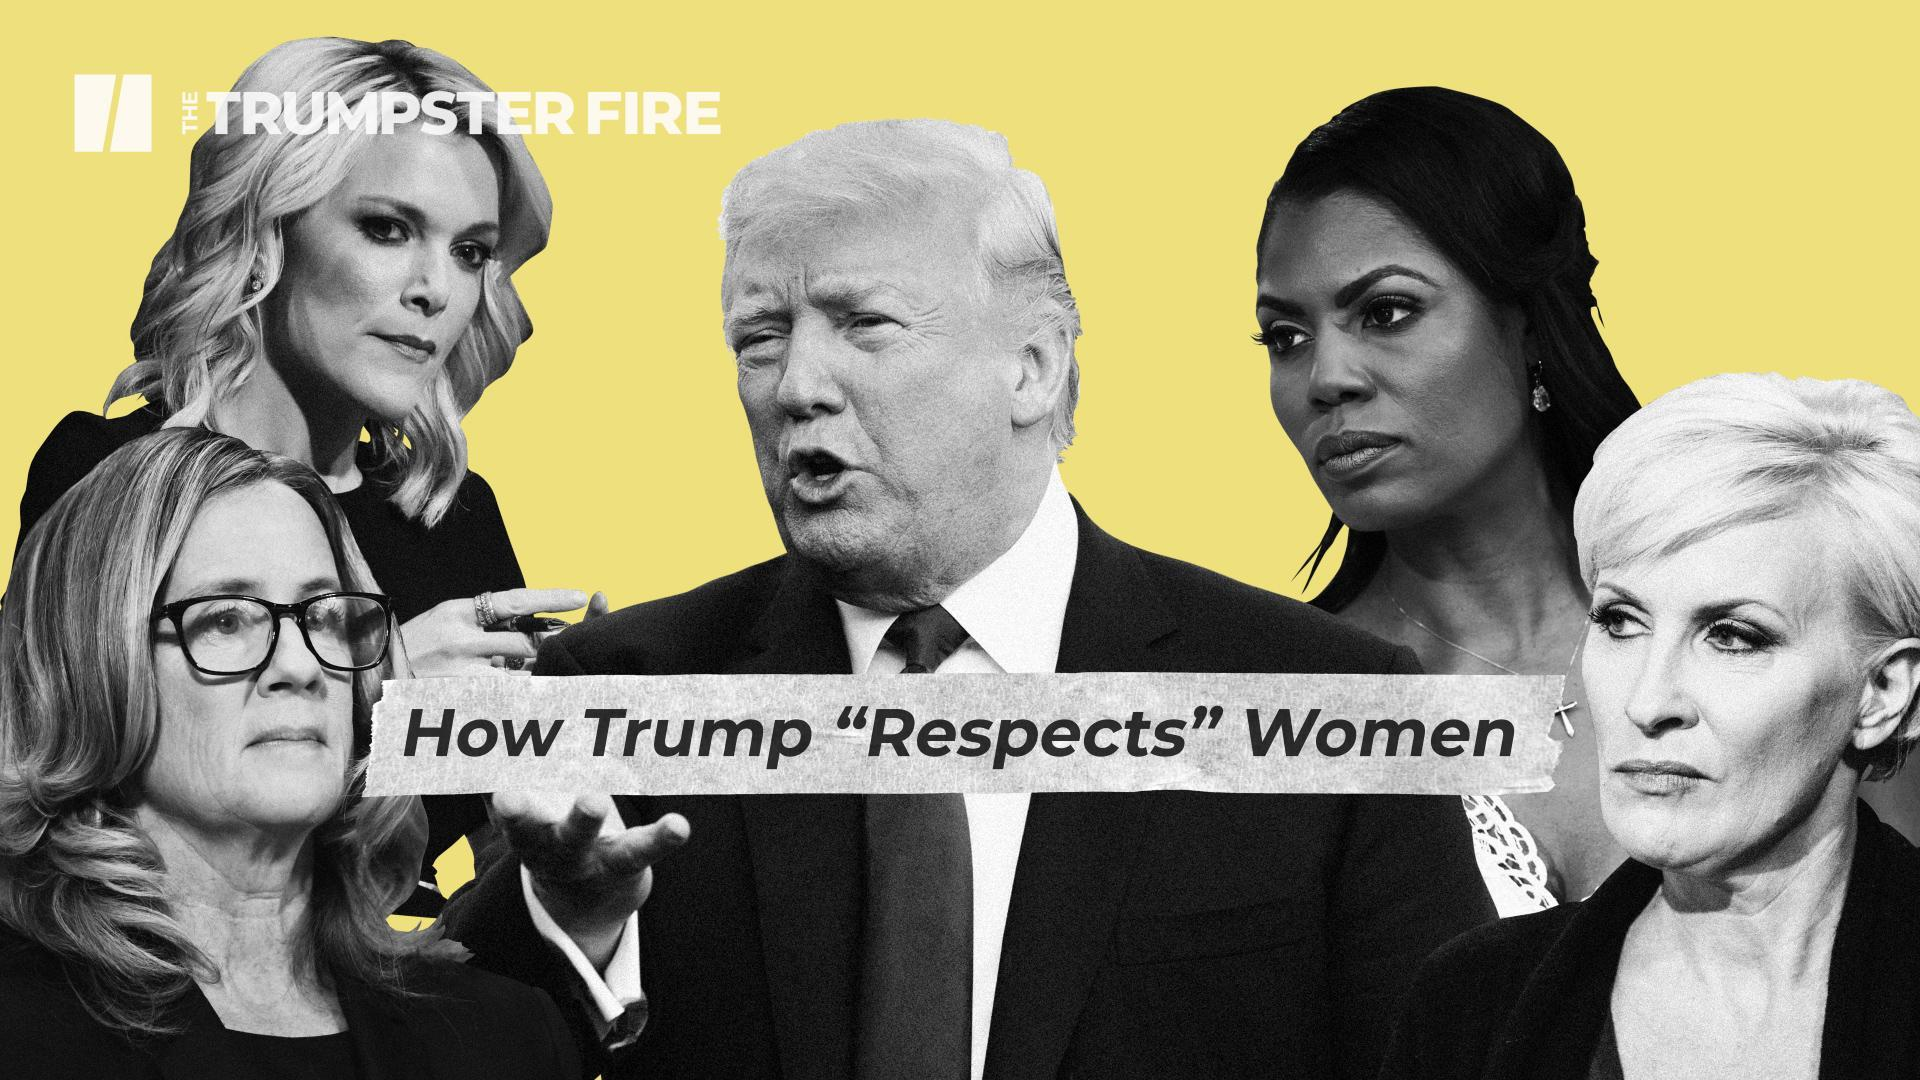 On A Train Wreck Day For Trump, 'Women For Trump' Tries To Spin An Alternative World